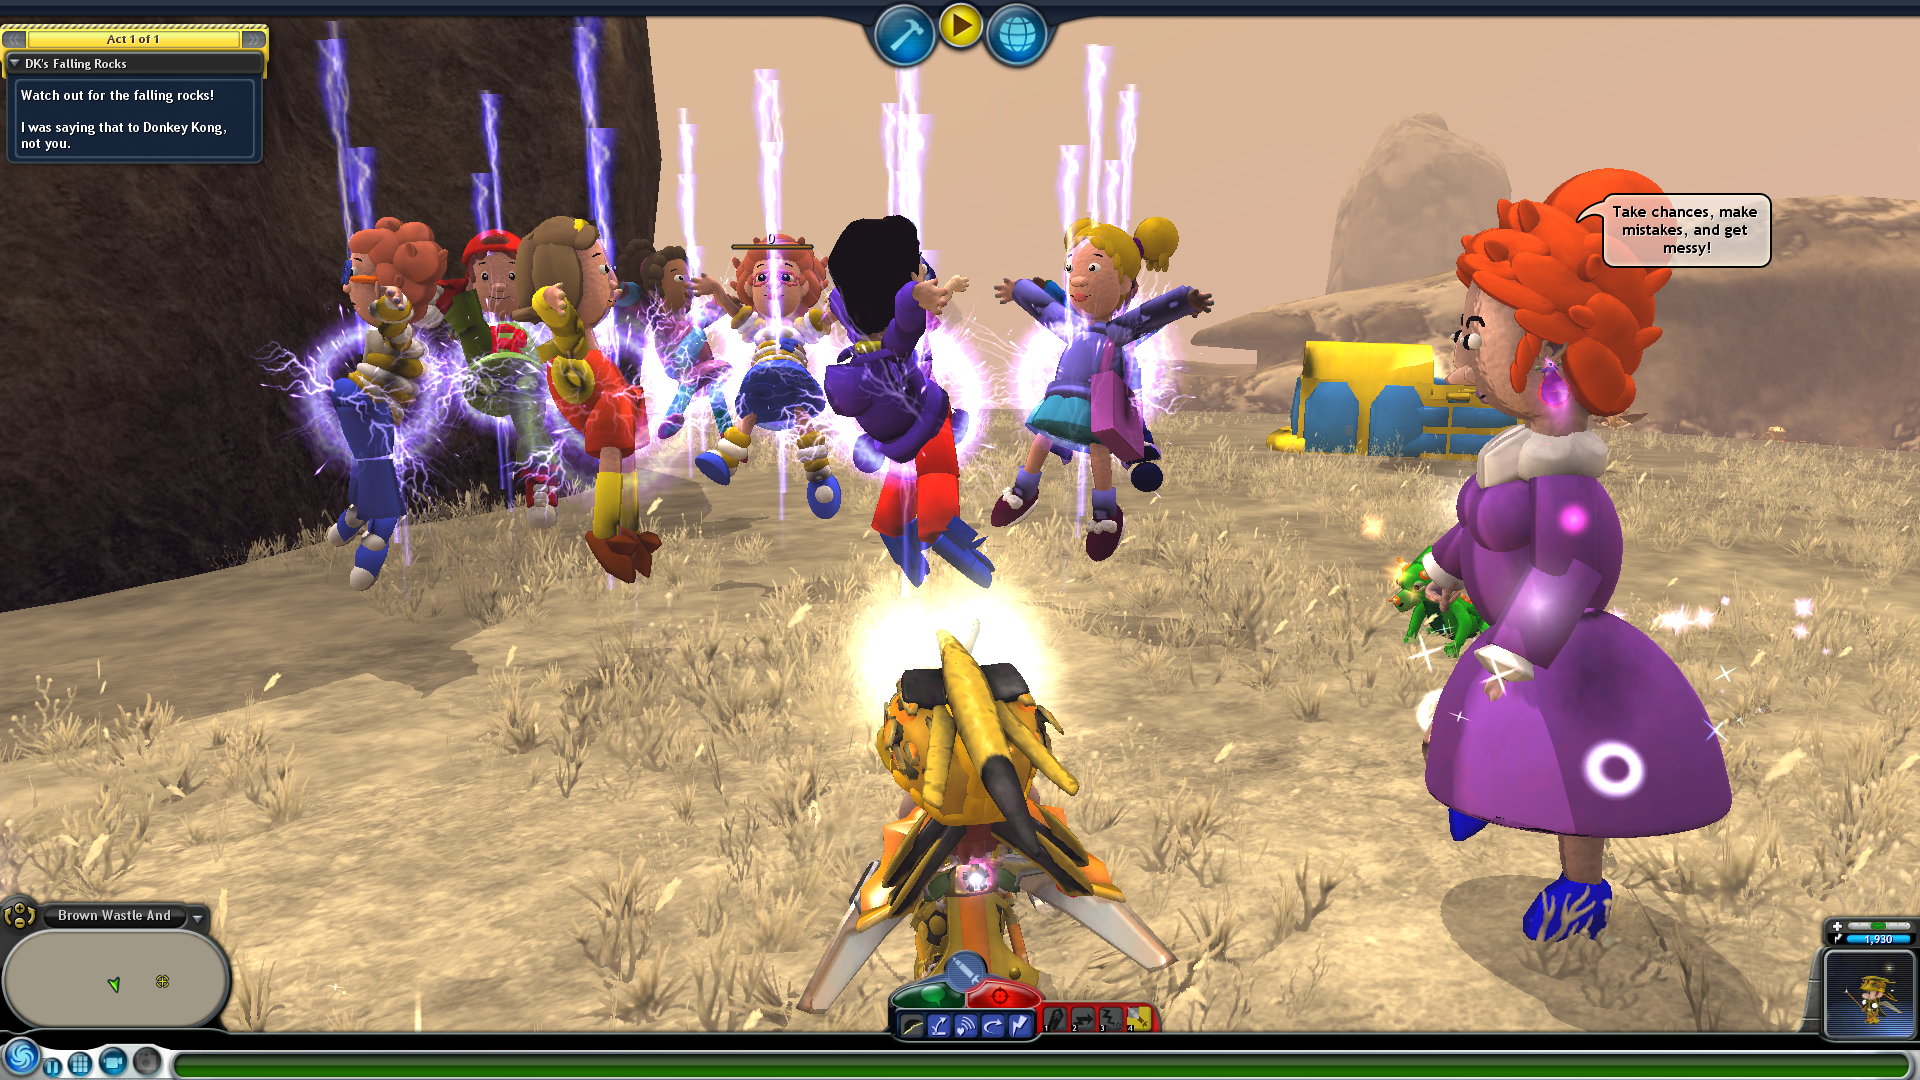 Spore_2020-02-27_18-20-07.png